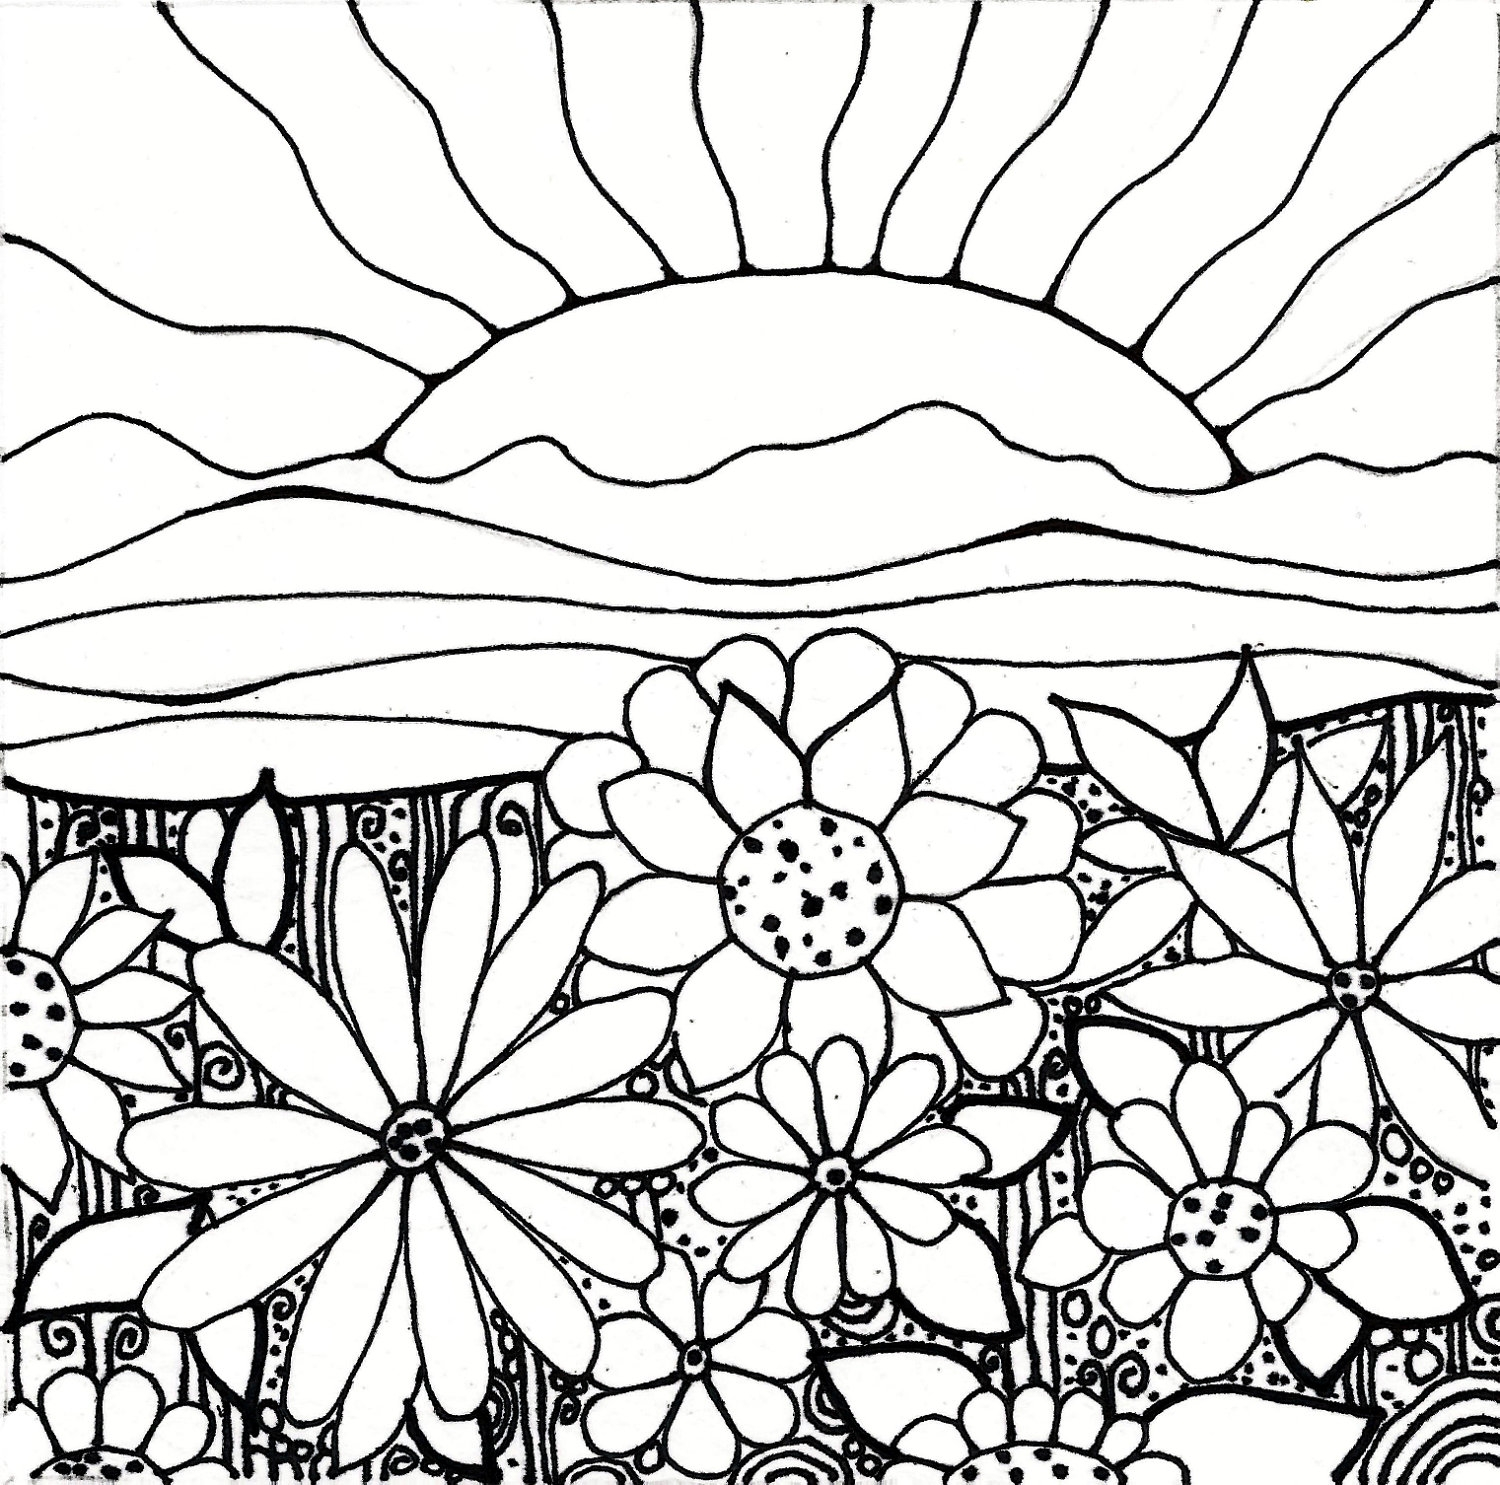 1500x1485 New Fish Coloring Page Adult Coloring Club Leri New Coloring Sheets